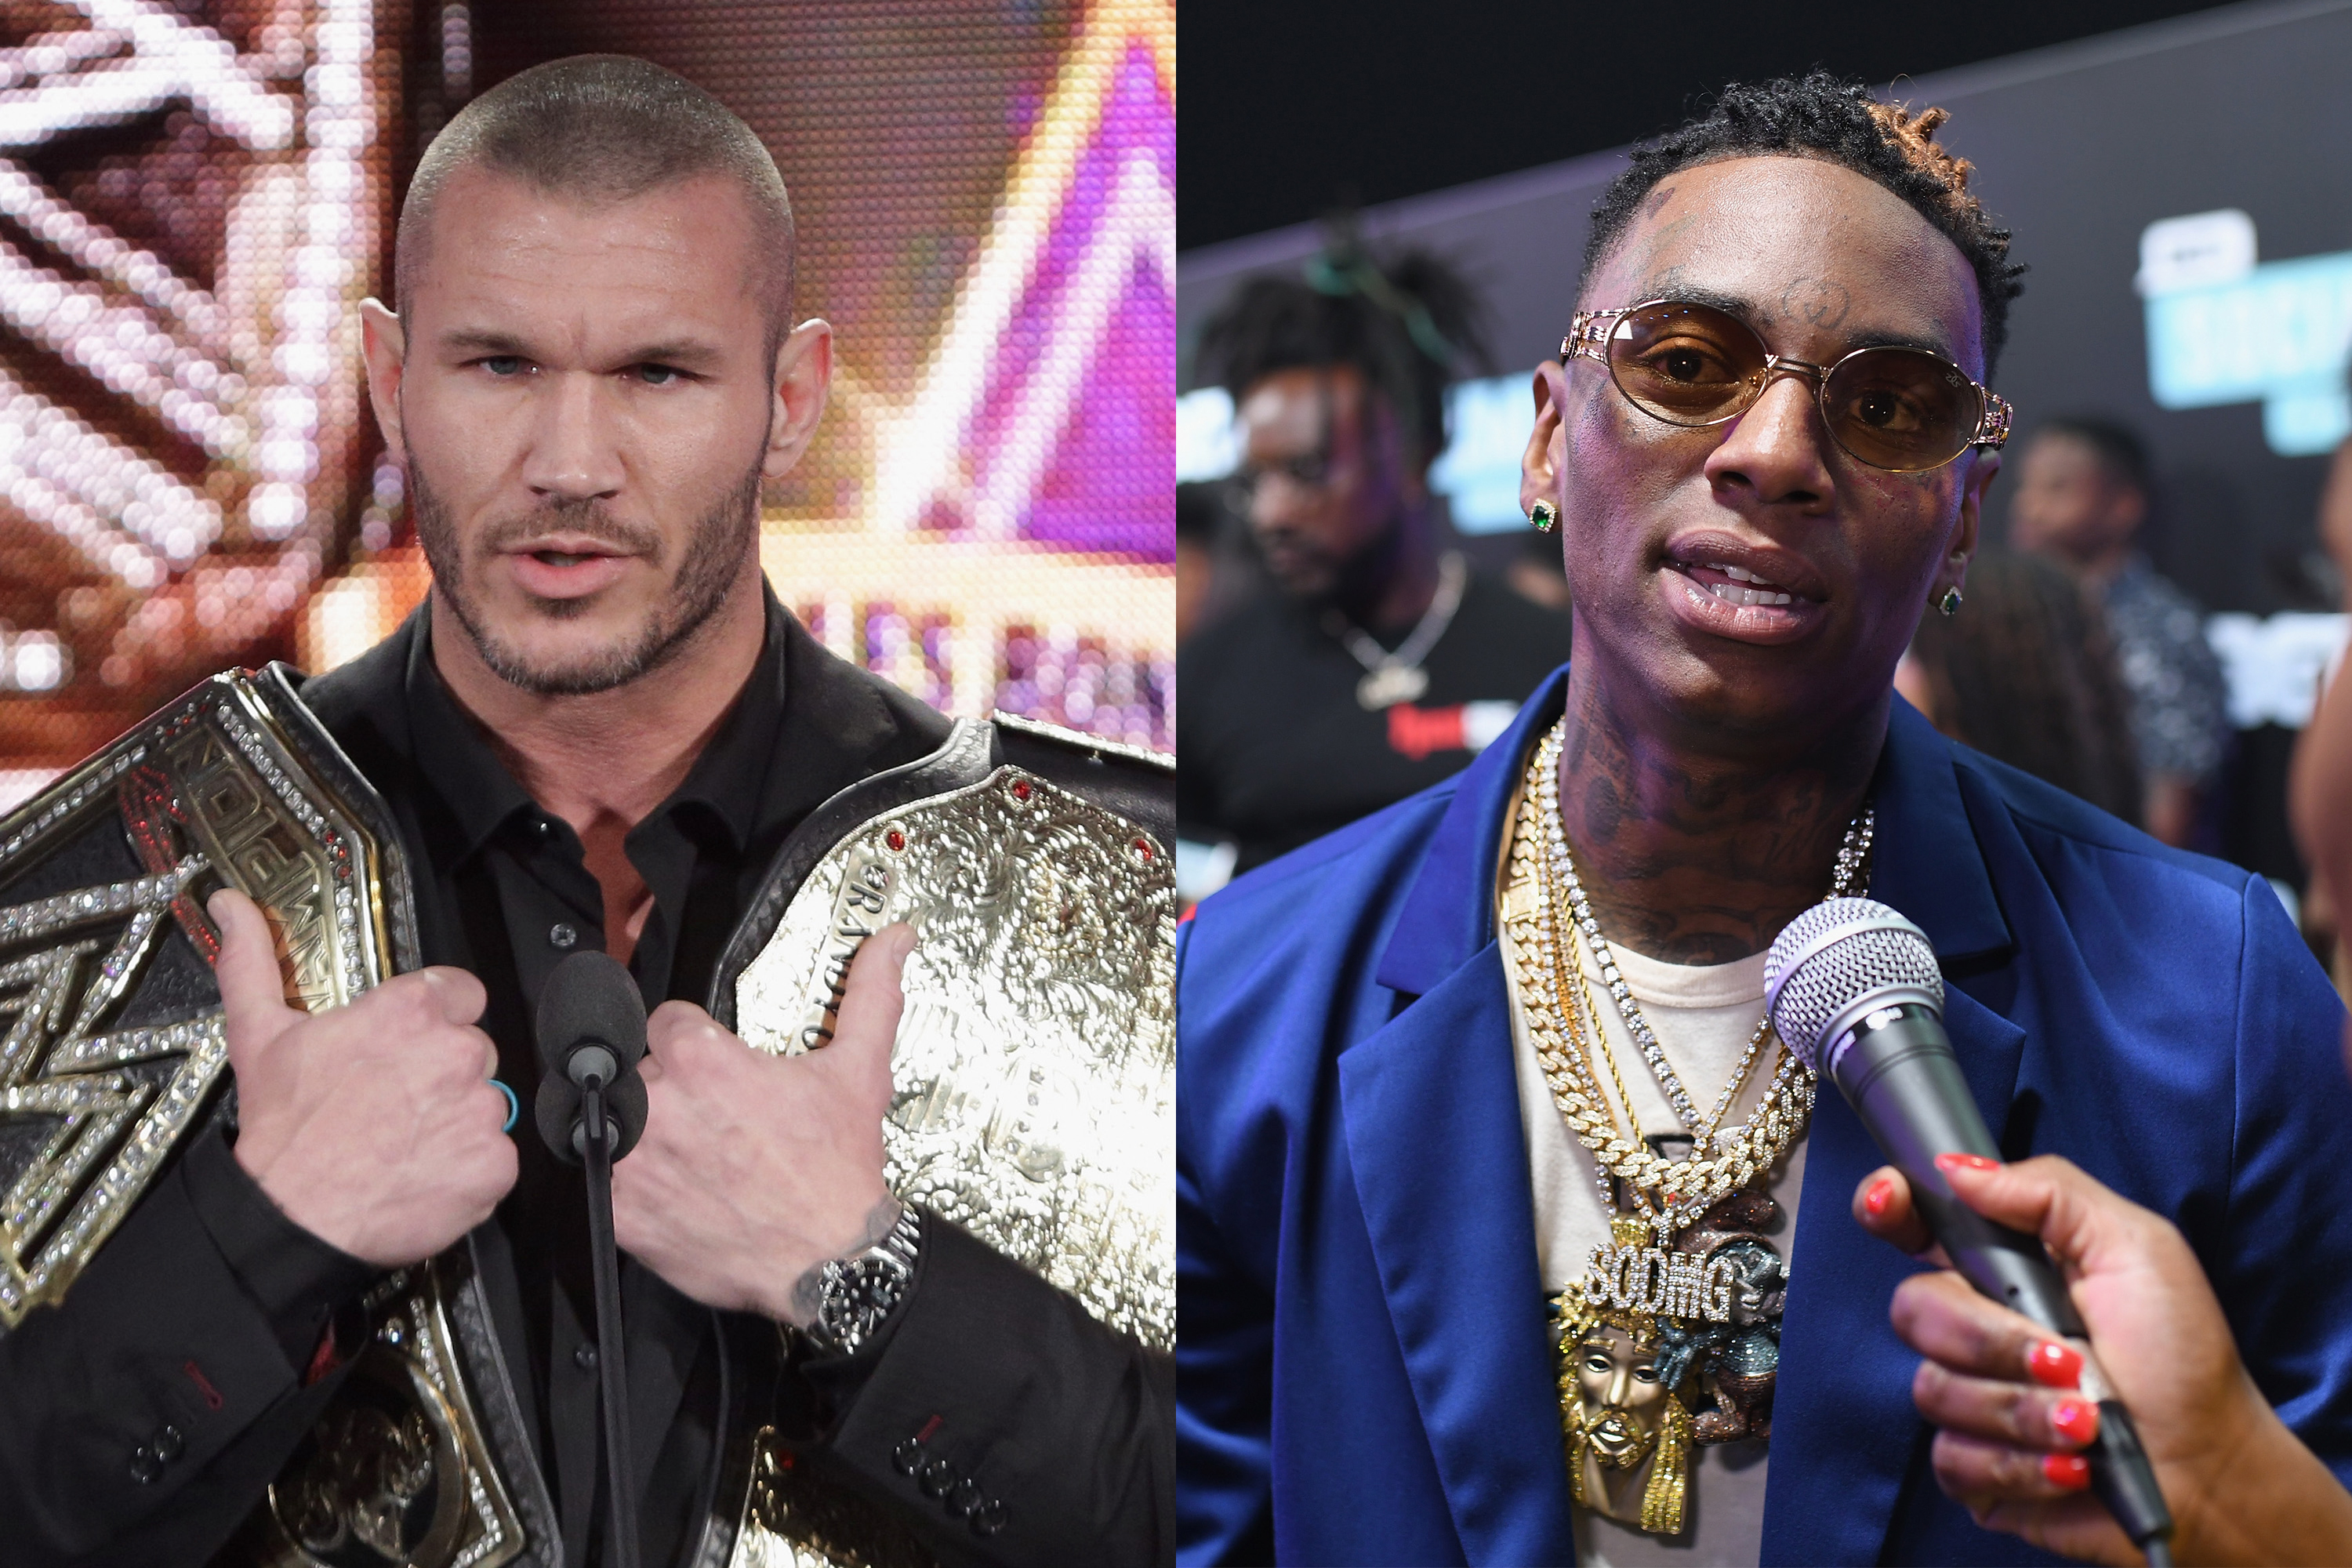 Randy Orton Tells Soulja Boy 'Come To My World And Say That' After Rapper Calls WWE 'Fake'